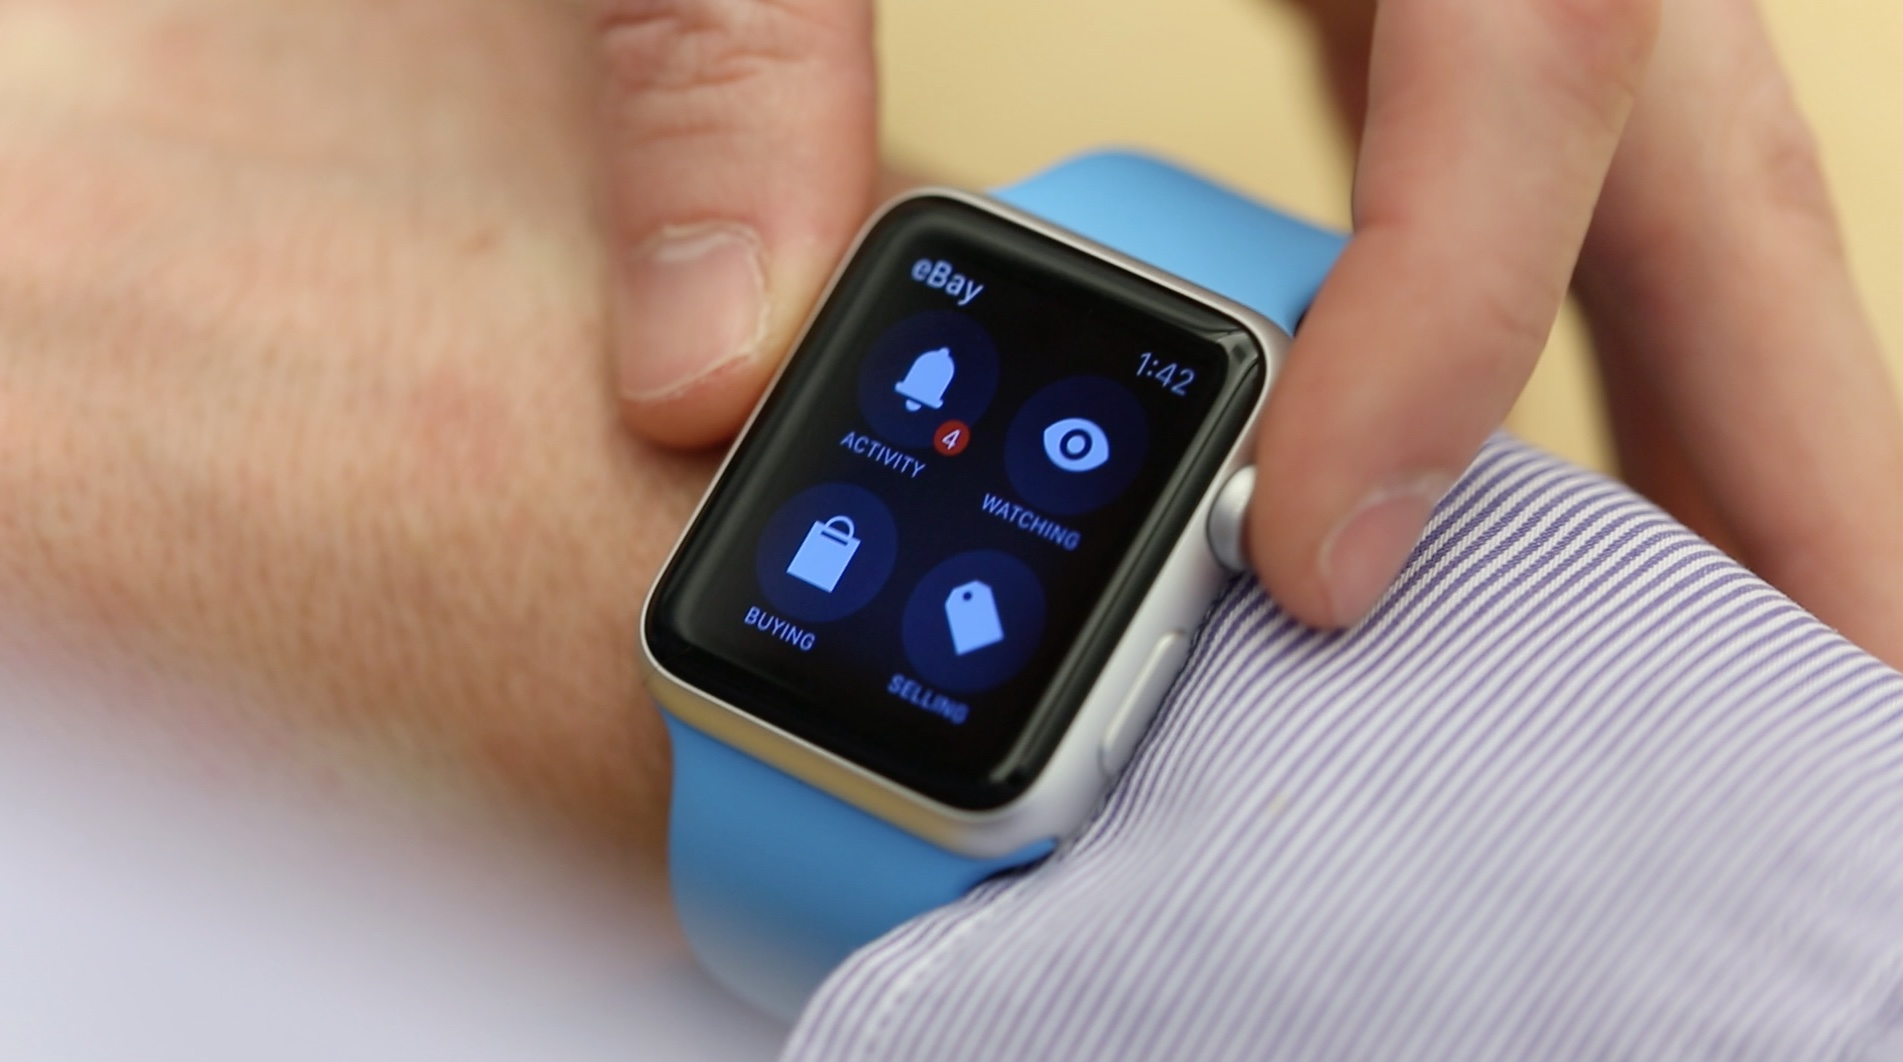 eBay for Apple Watch teaser 001